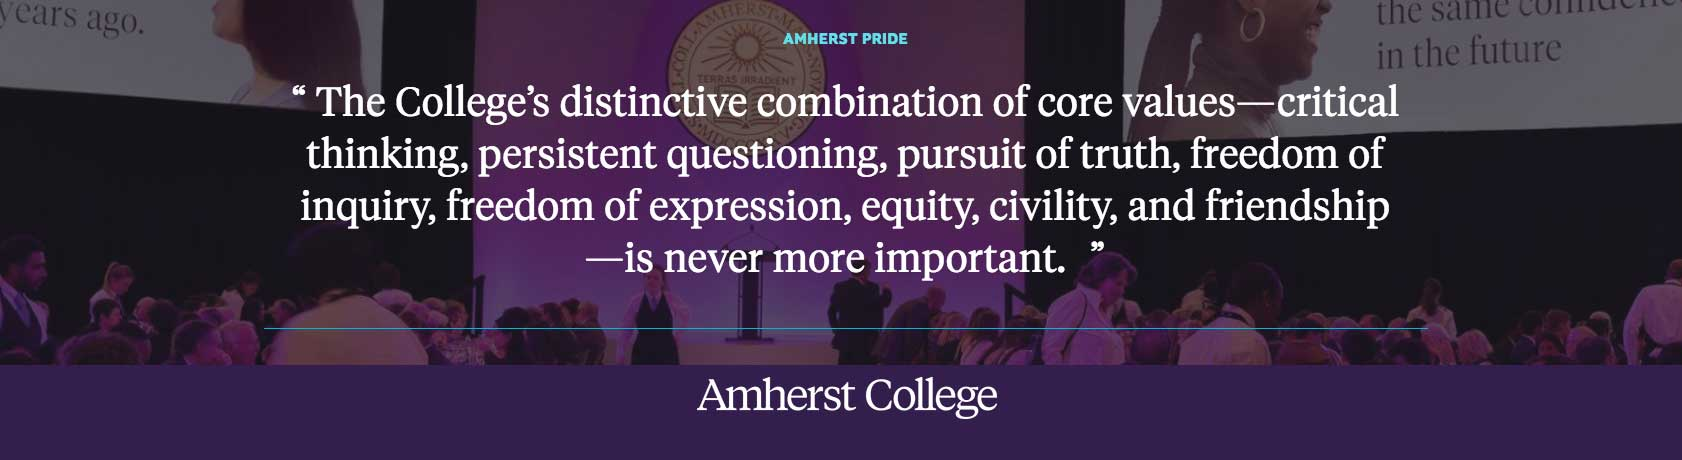 "Quote from President Biddy Martin: ""The College's distinctive combination of core values is never more important."""